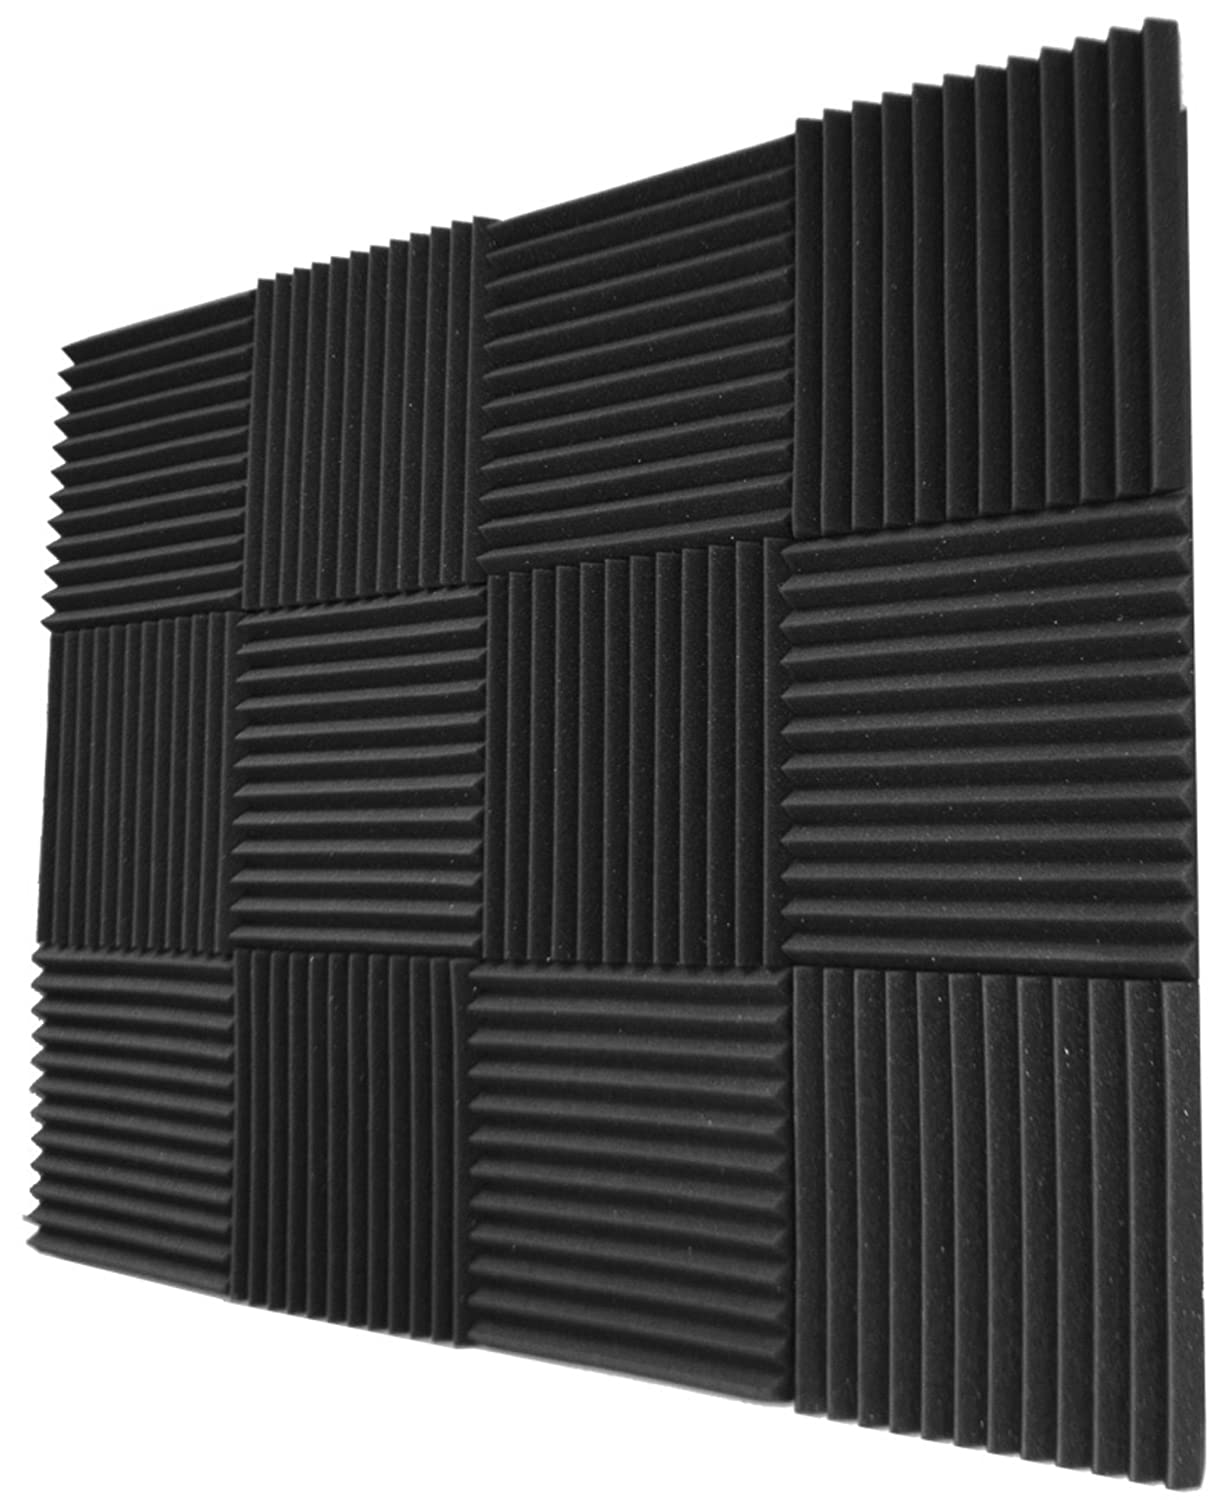 12 Pack- Red/Charcoal Acoustic Panels Studio Foam Wedges 1 X 12 X 12 Foamily 4334435805